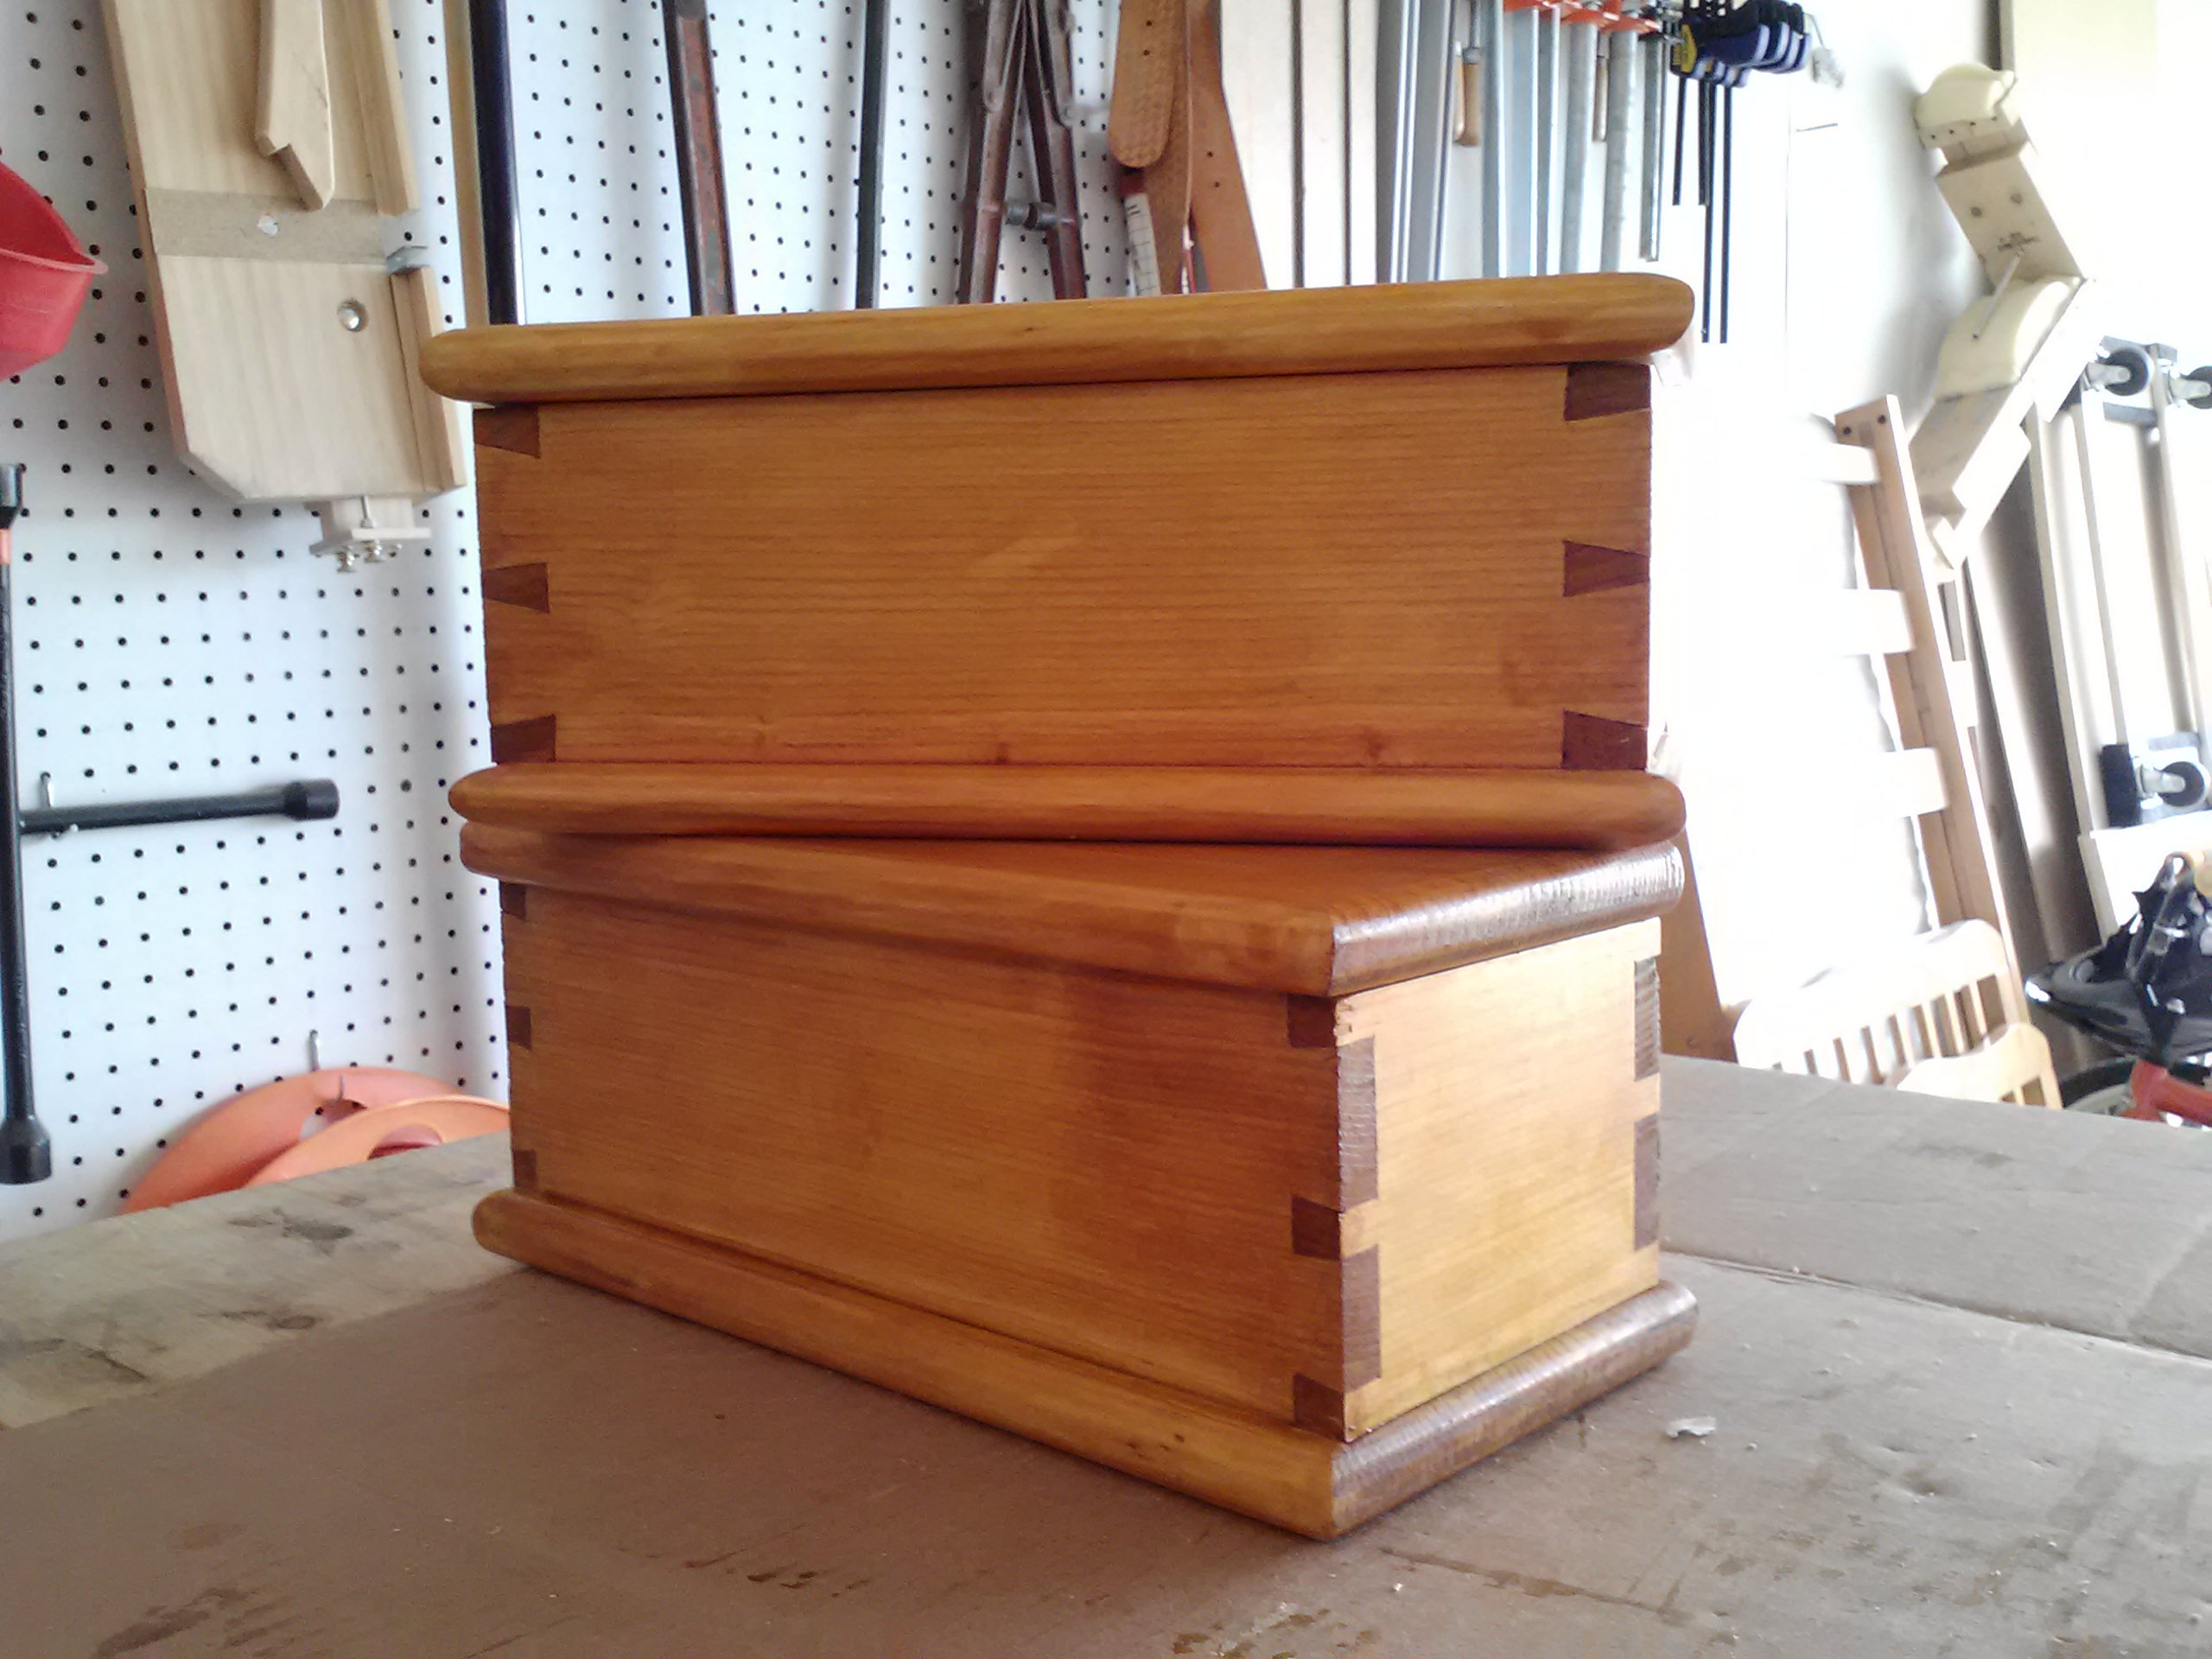 Dovetail Box By Harshdoug Woodworking Masterclasses